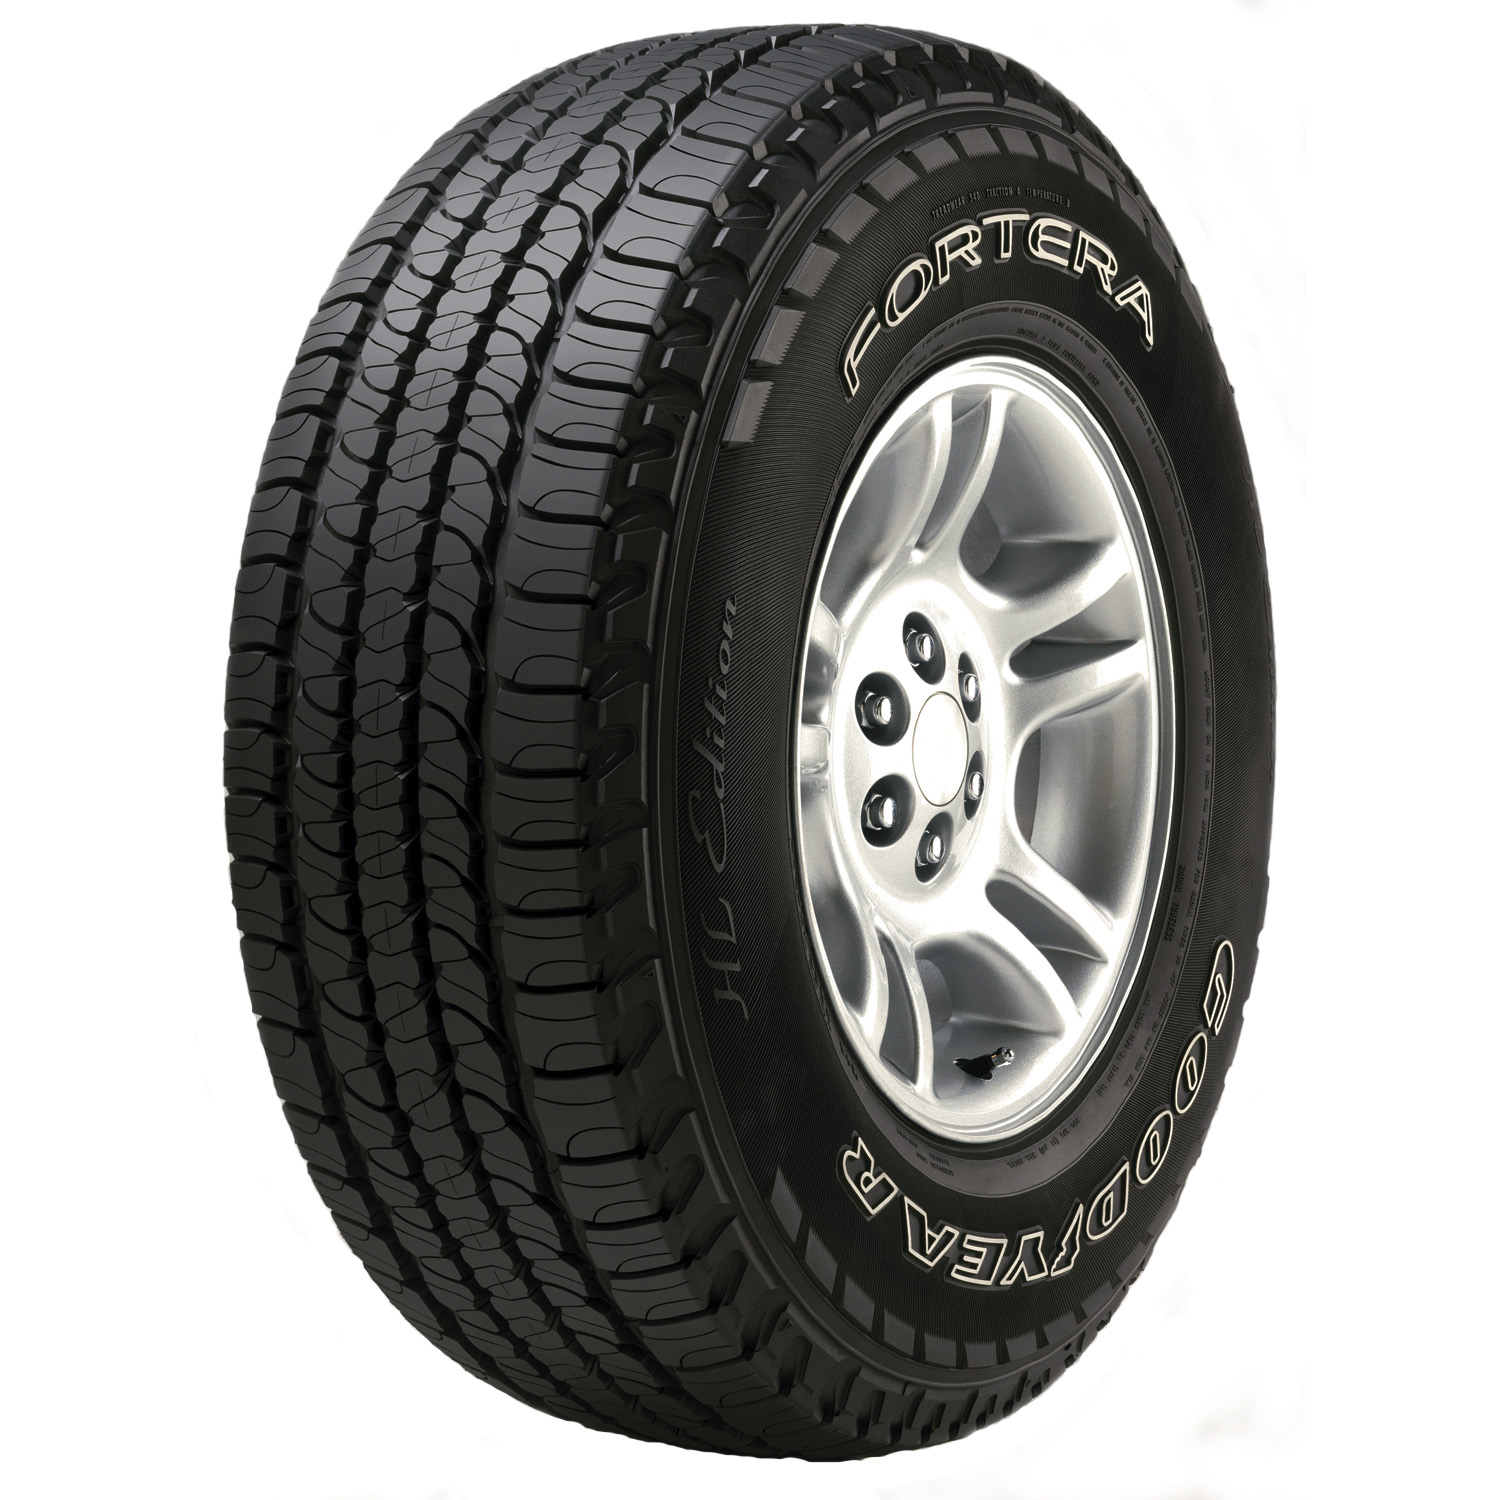 Fortera HL - P255/65R18 109S SL BSL - All Season Tire